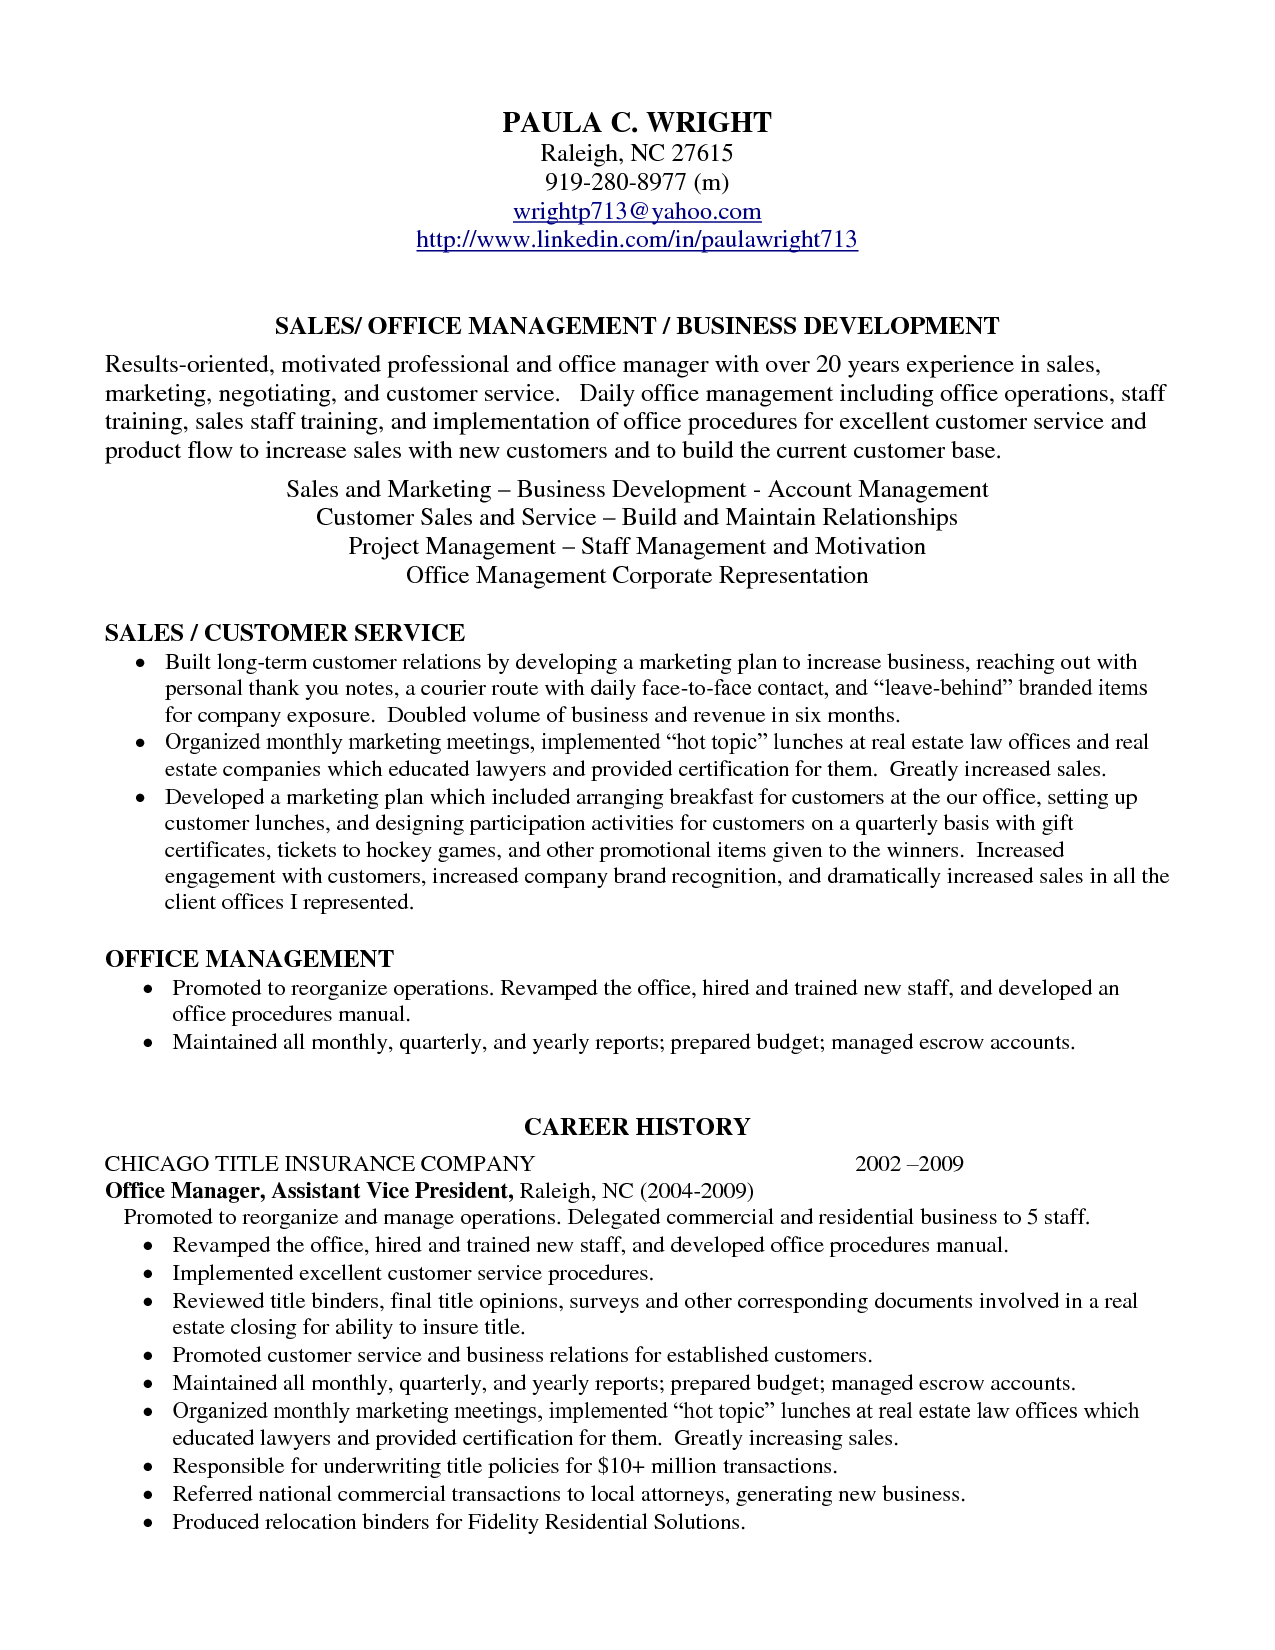 professional profile resume examples resume professional profile examples profile for resume sample - Profile Example For Resume